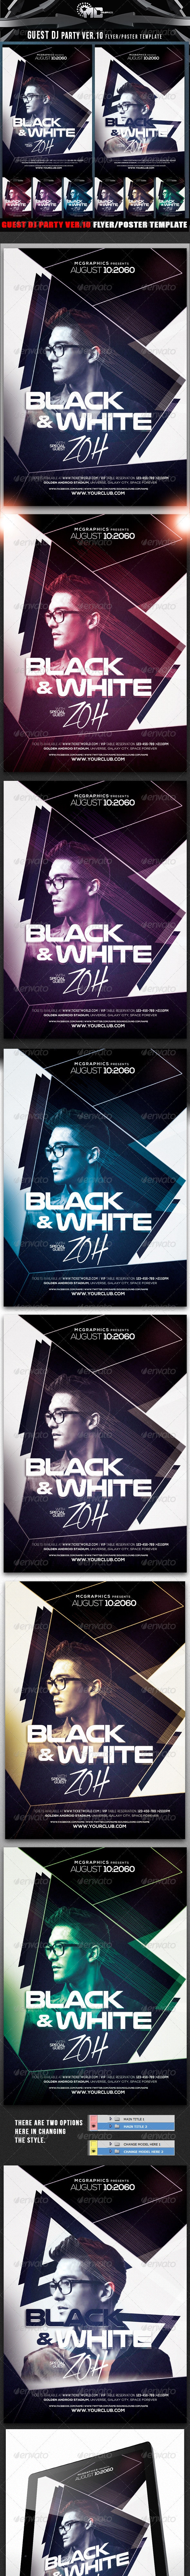 Guest DJ Party Ver.10 Flyer/Poster Template - Flyers Print Templates